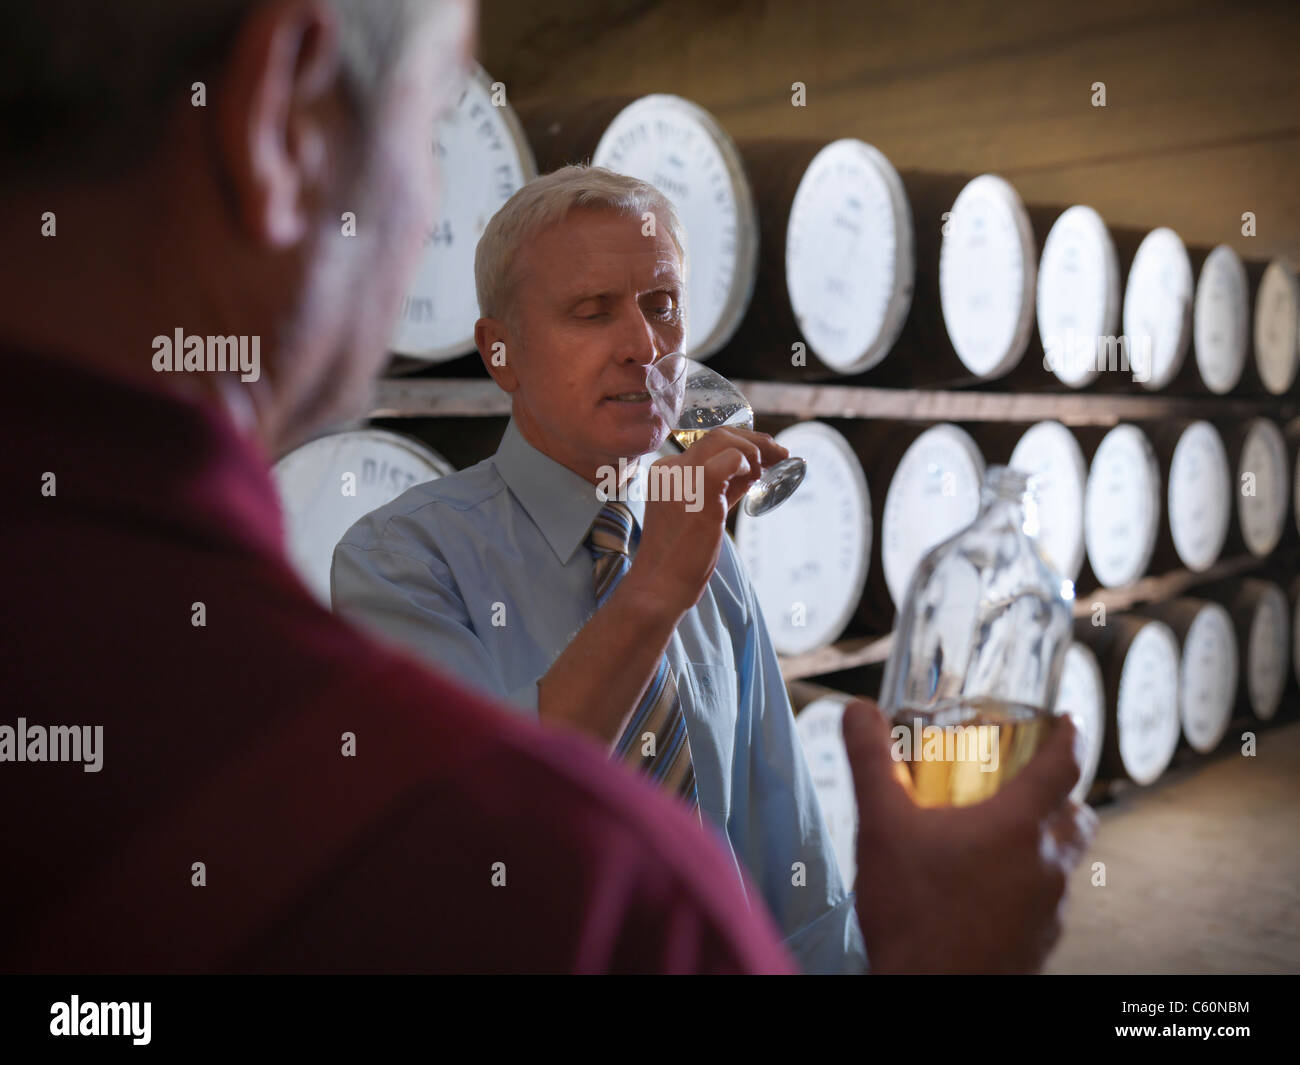 Workers checking whisky in distillery - Stock Image